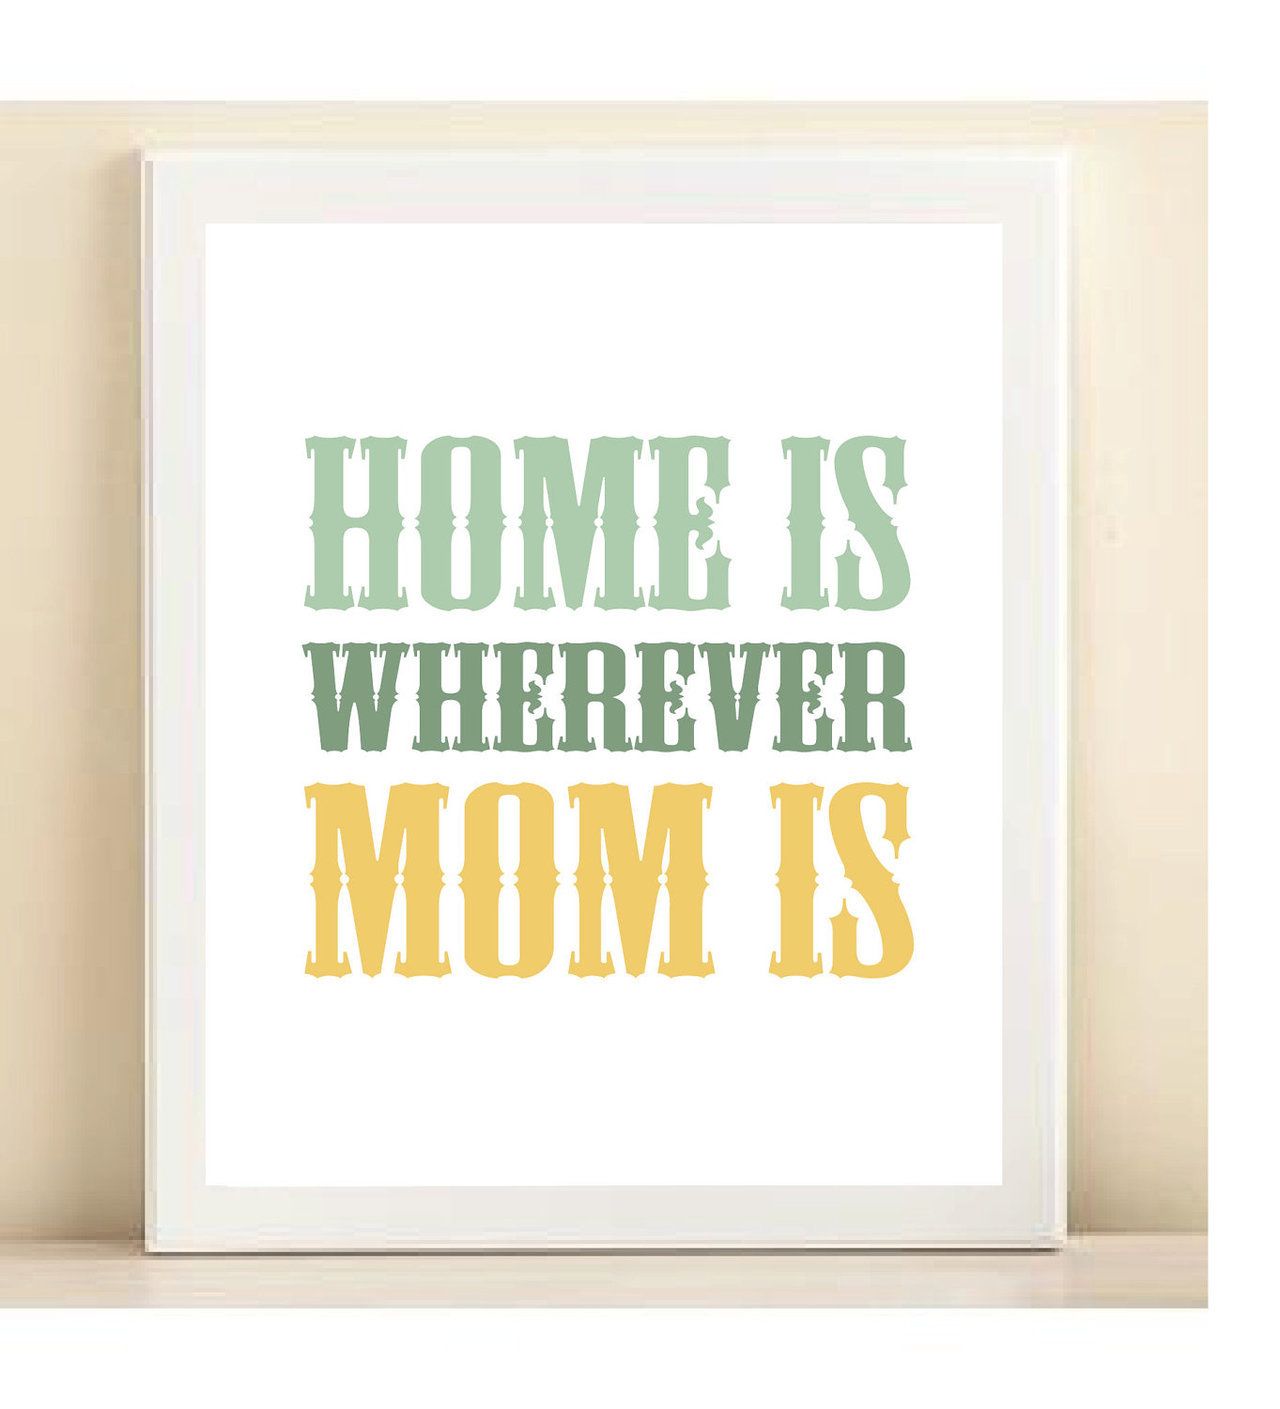 Aqua & Yellow Home Is Wherever Mom Is print by AmandaCatherineDes